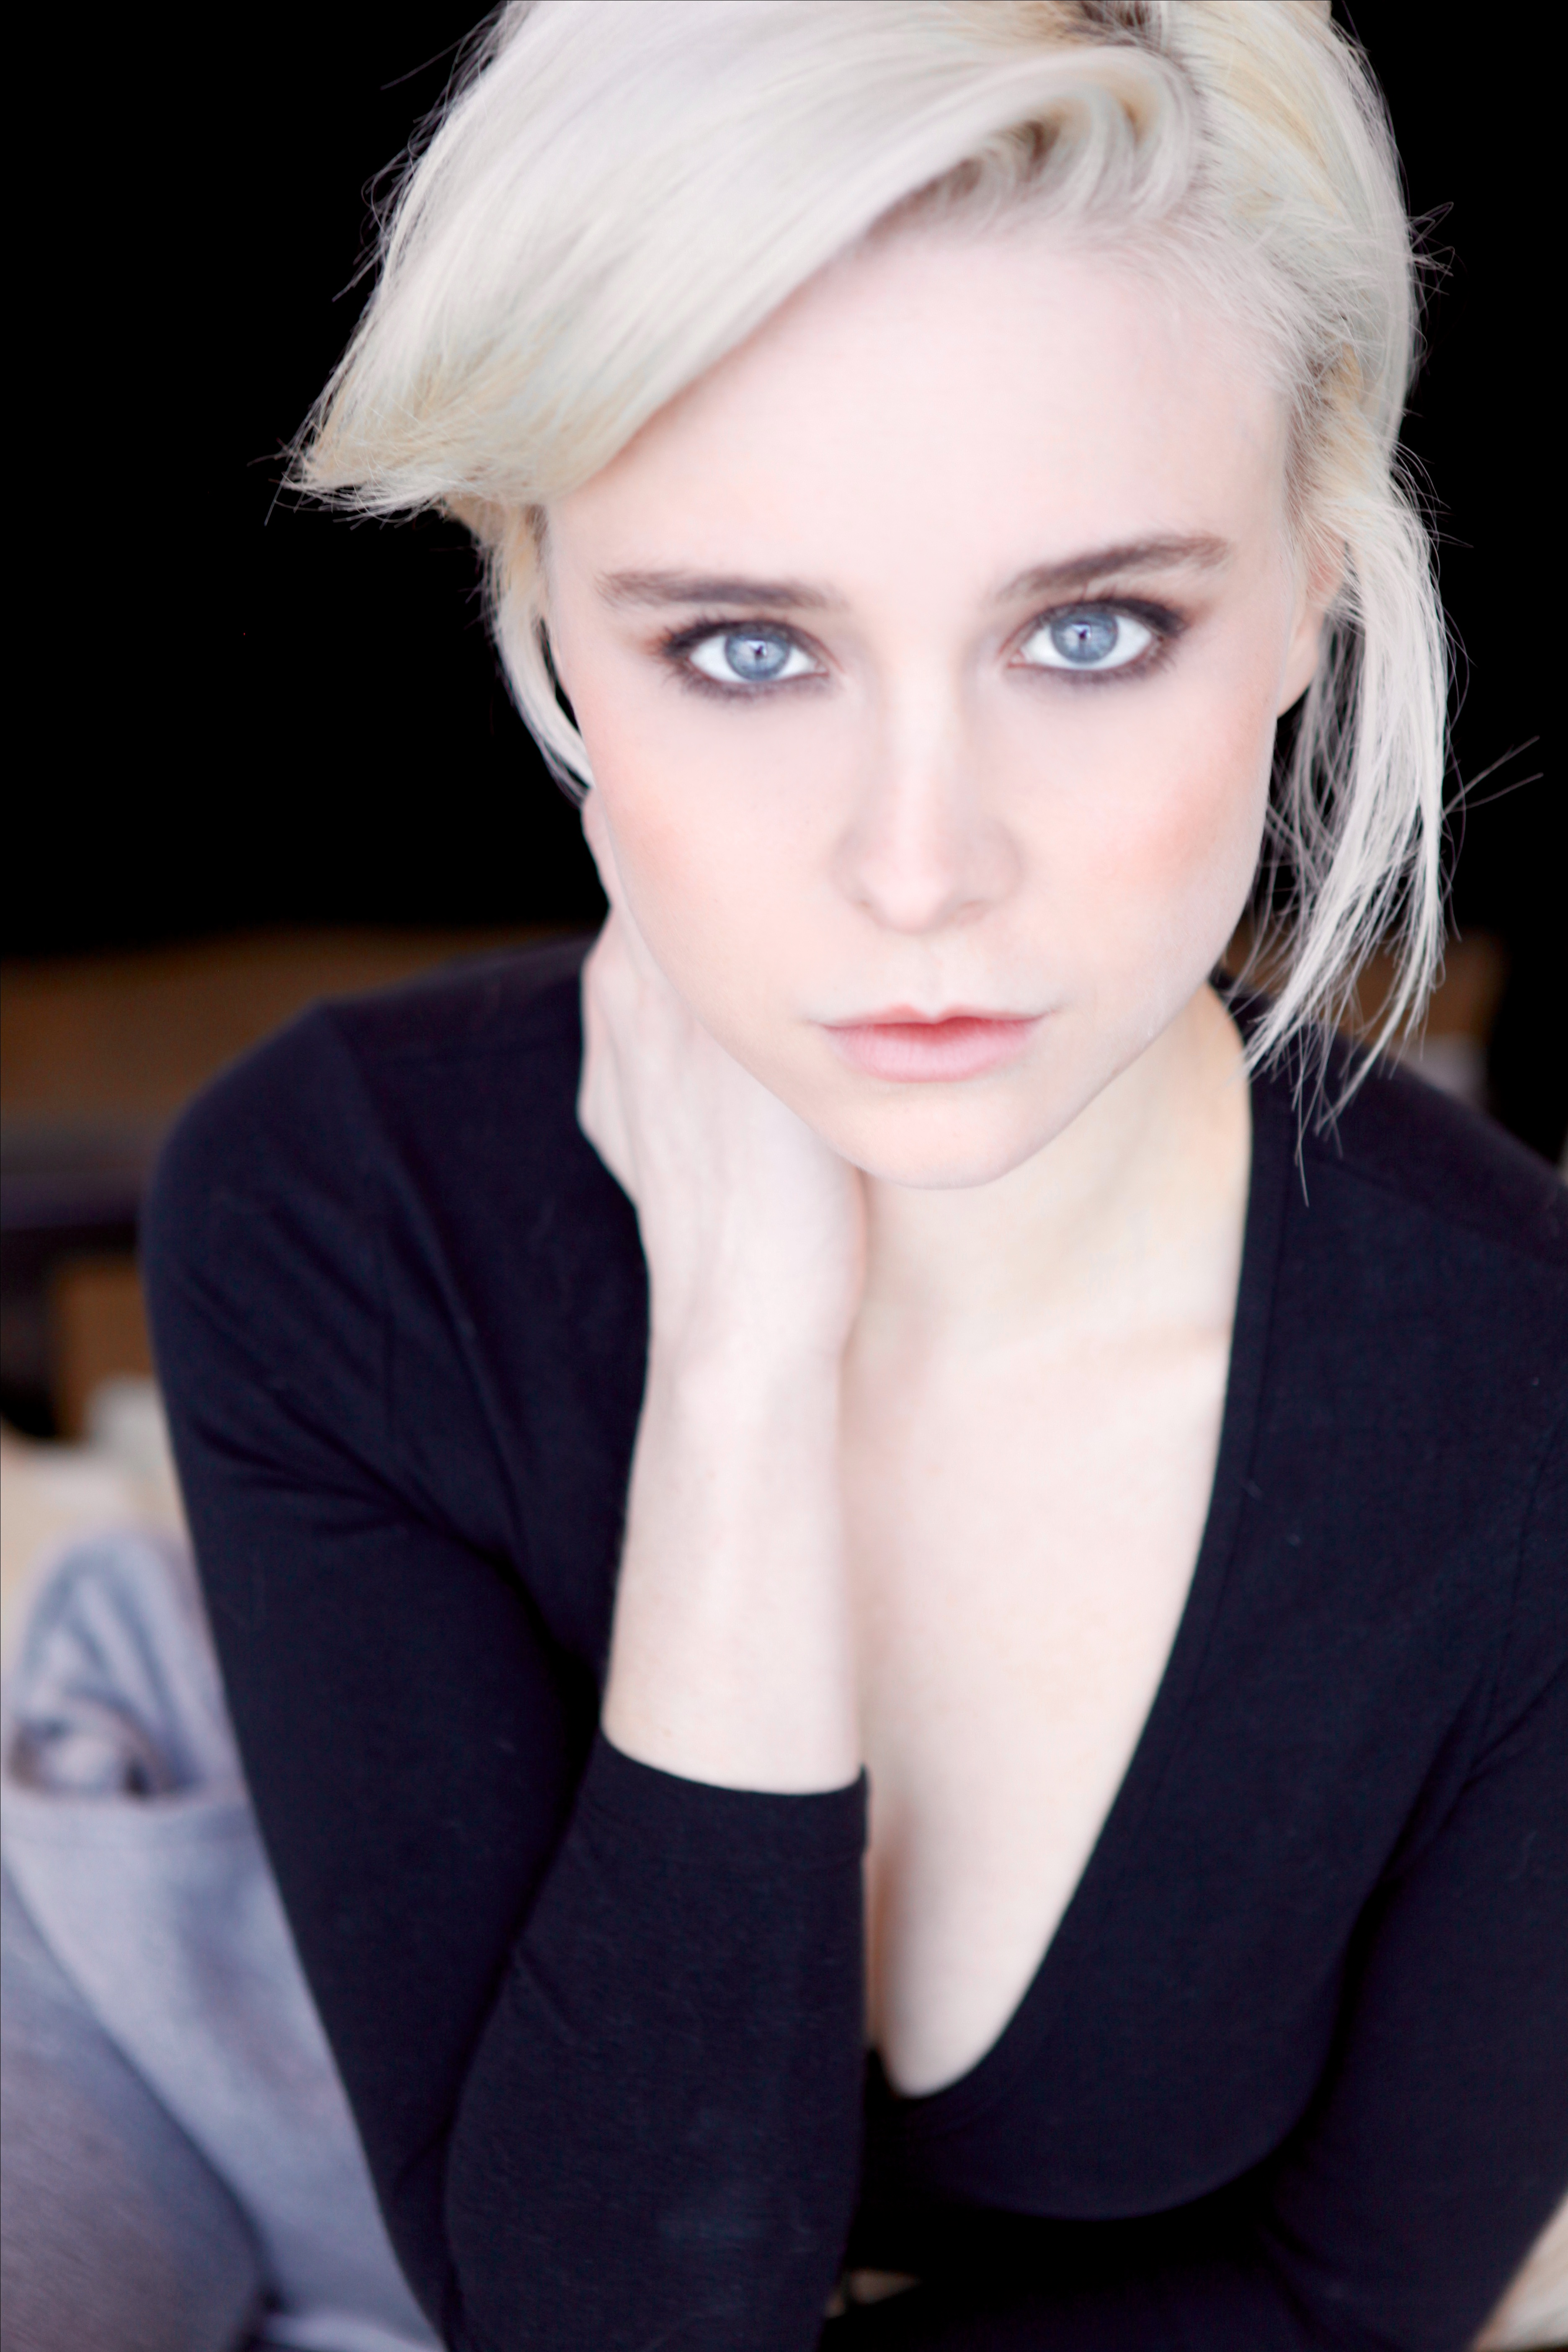 Alessandra Torresani naked (35 photo), Ass, Leaked, Twitter, in bikini 2020